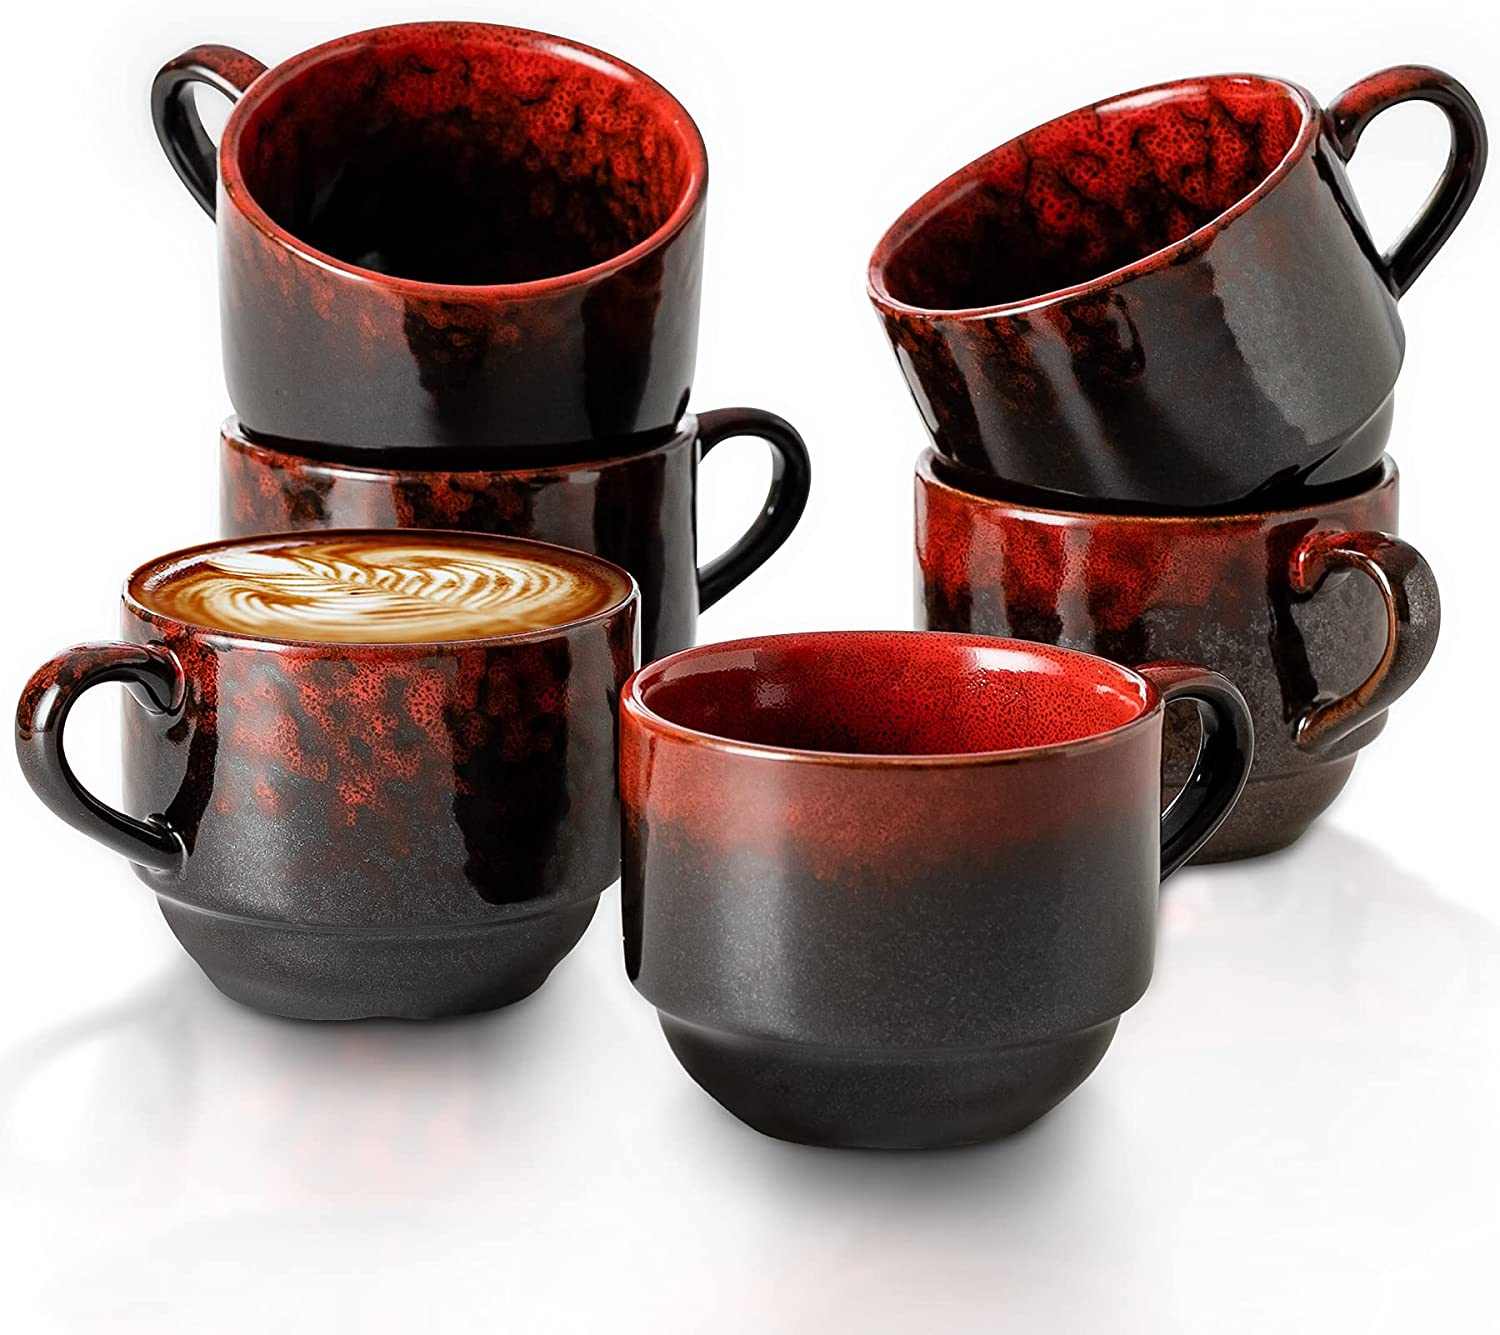 Ceramic Coffee Mug 6.7 Oz Mugs Reactiv Challenge the lowest price of Japan Limited time for free shipping 6 Stoneware Set of